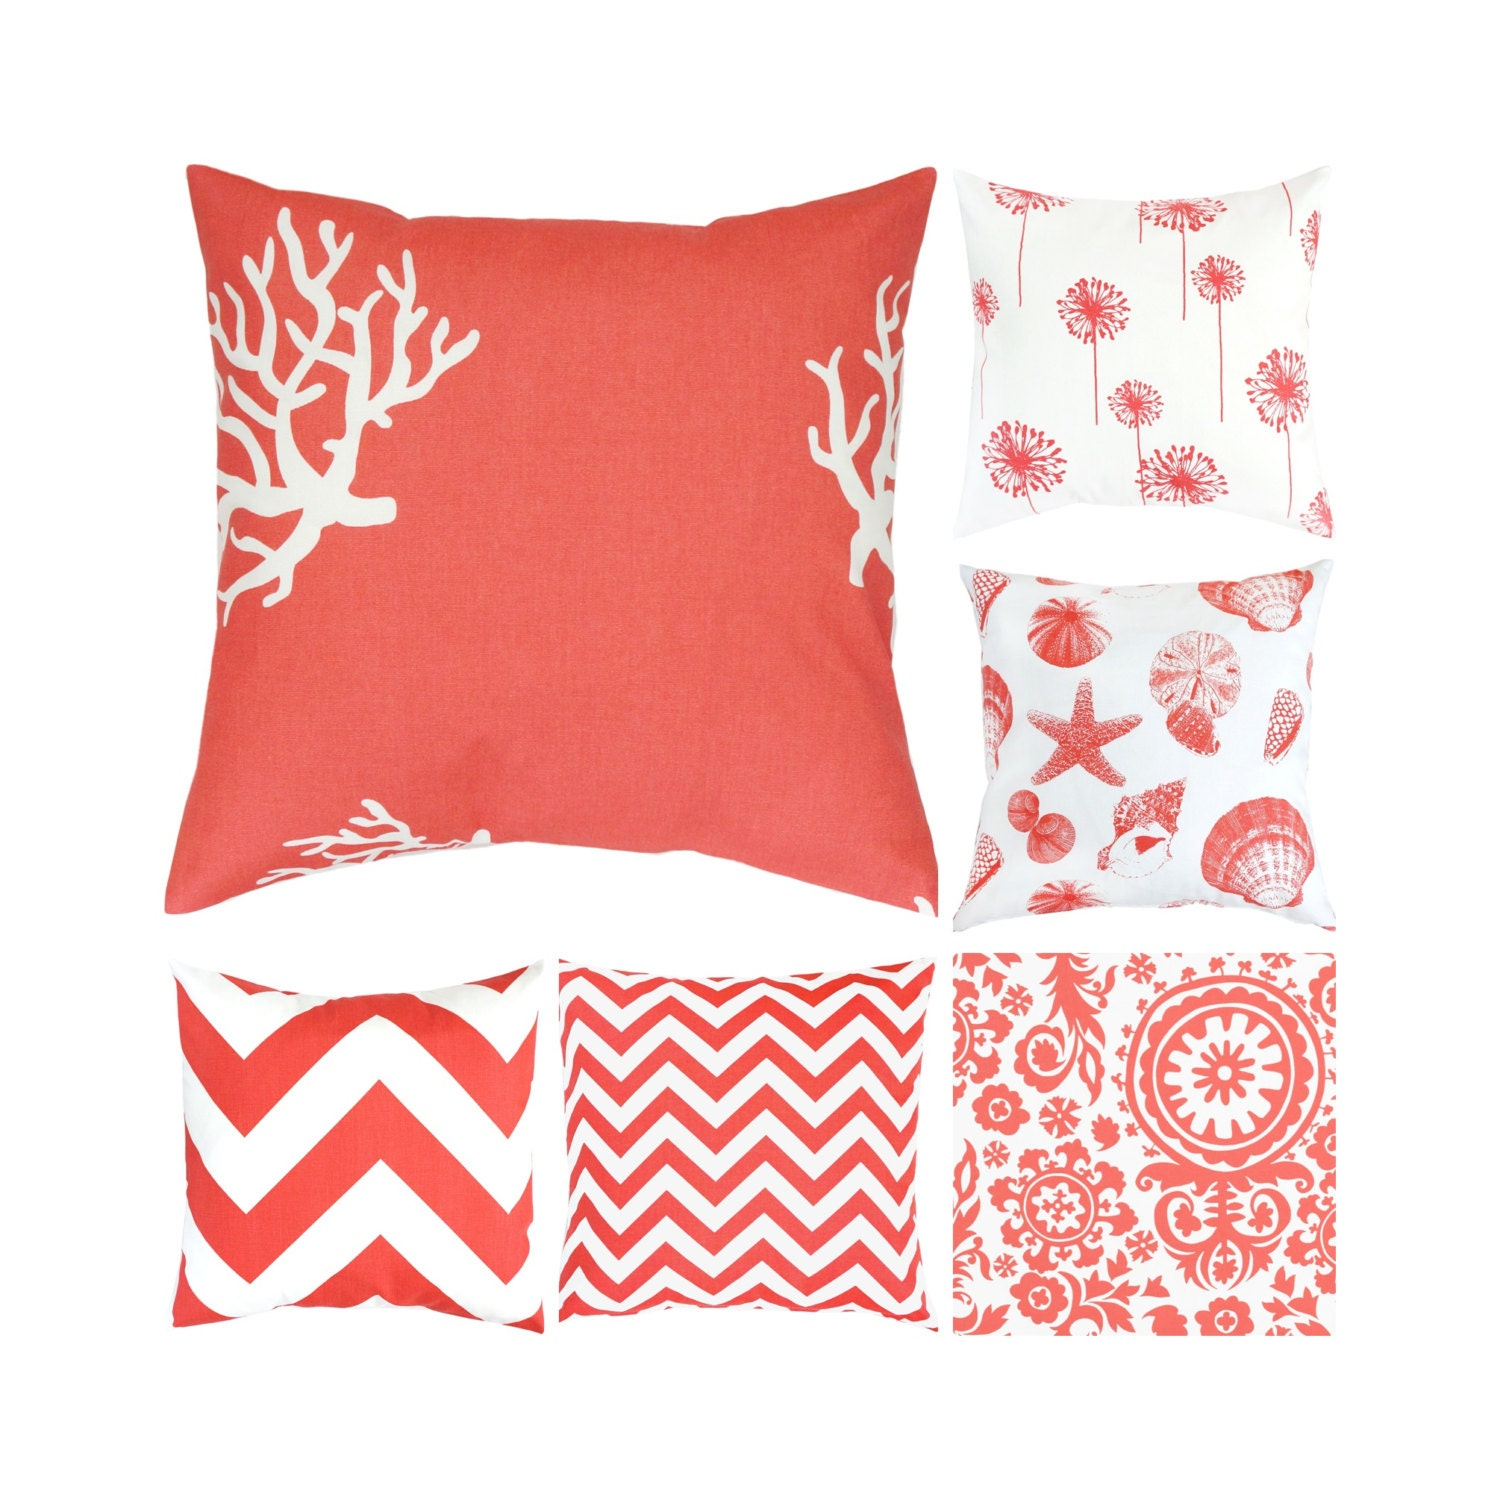 Throw Pillows With Coral : White Coral Throw Pillow Toss Pillow Coral Euro Sham Cover